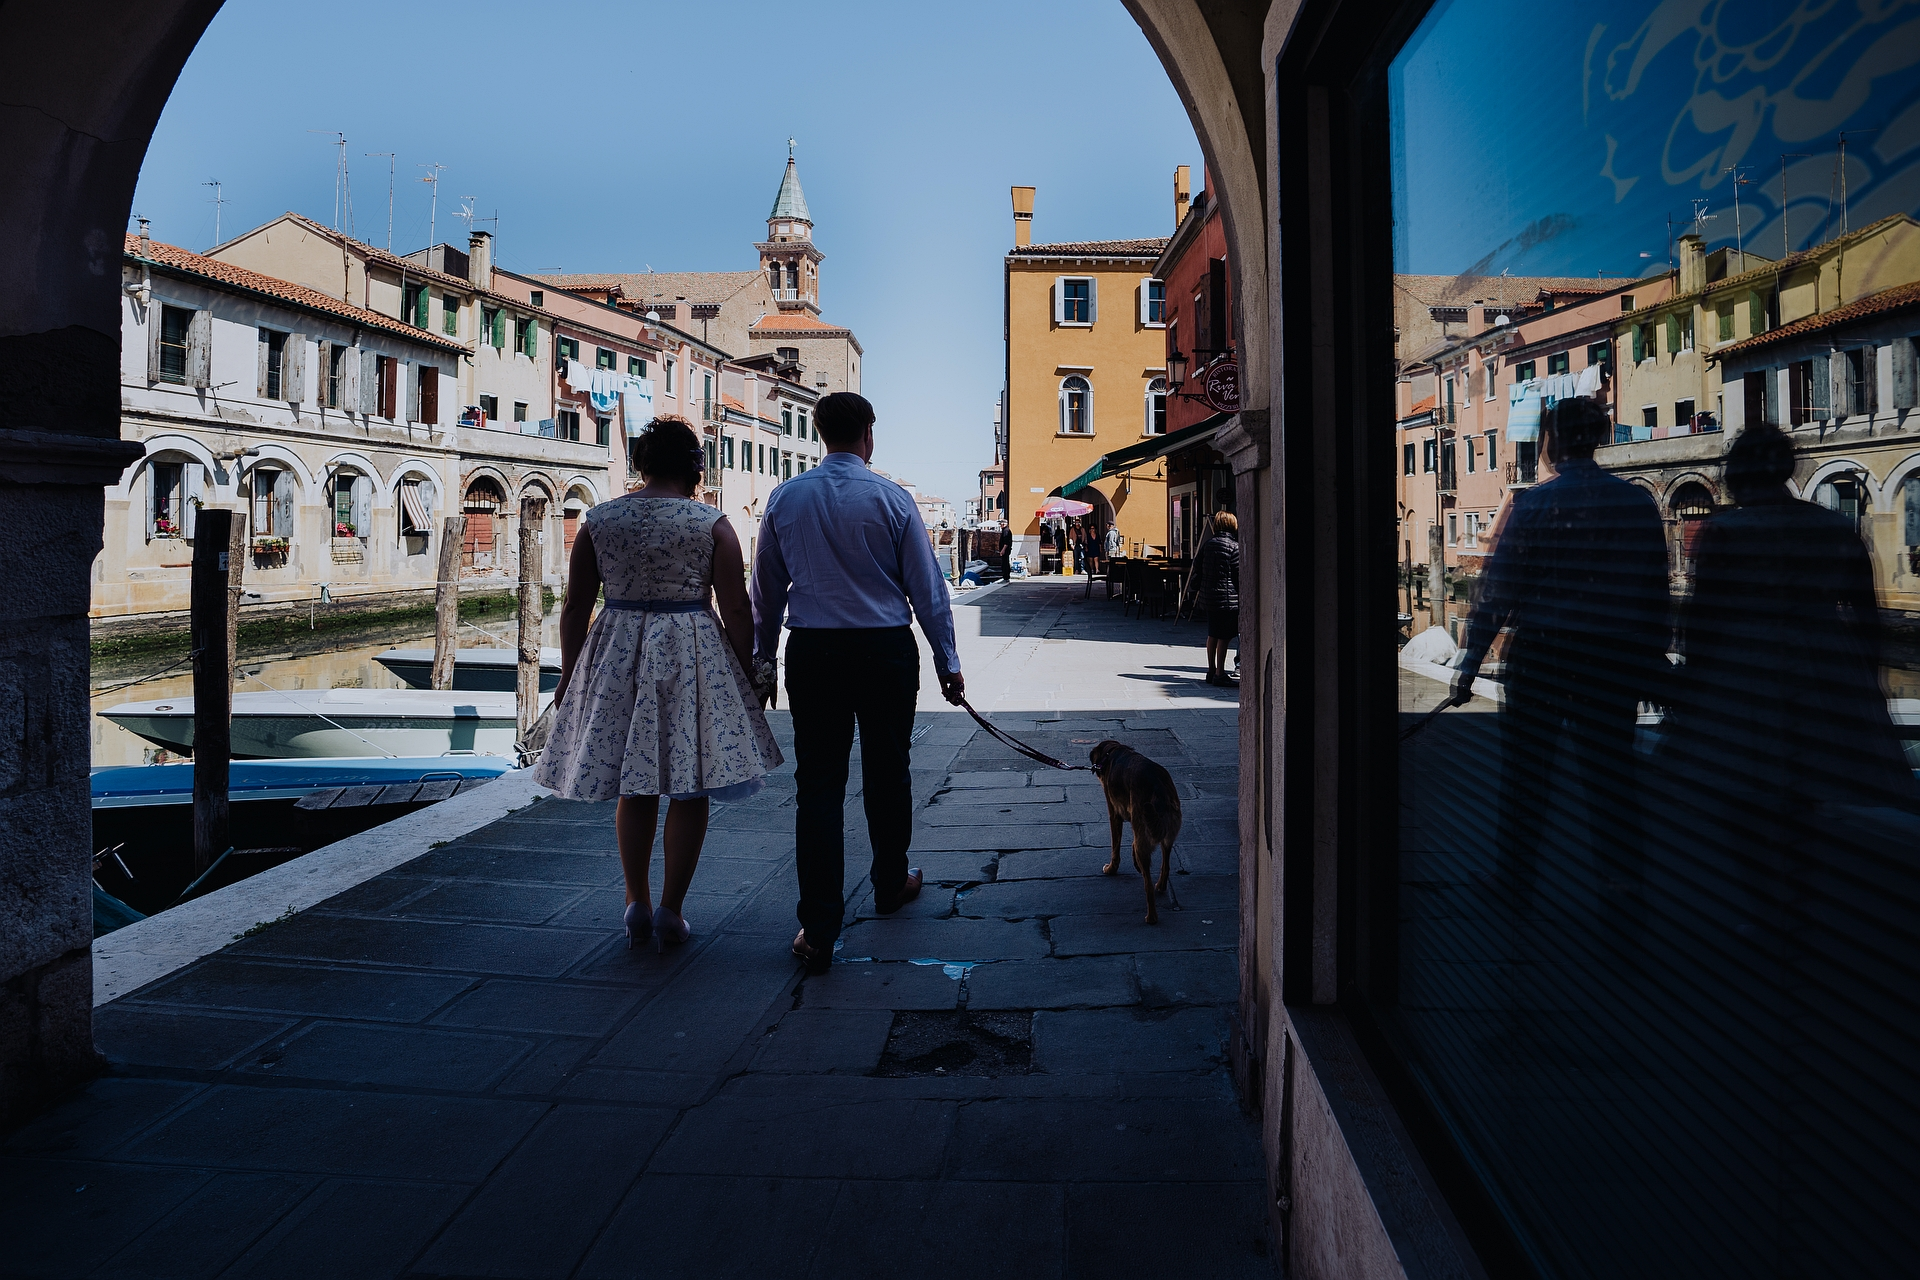 Italy Elopement Photography from Chioggia | The bride and groom take a walk on typical streets